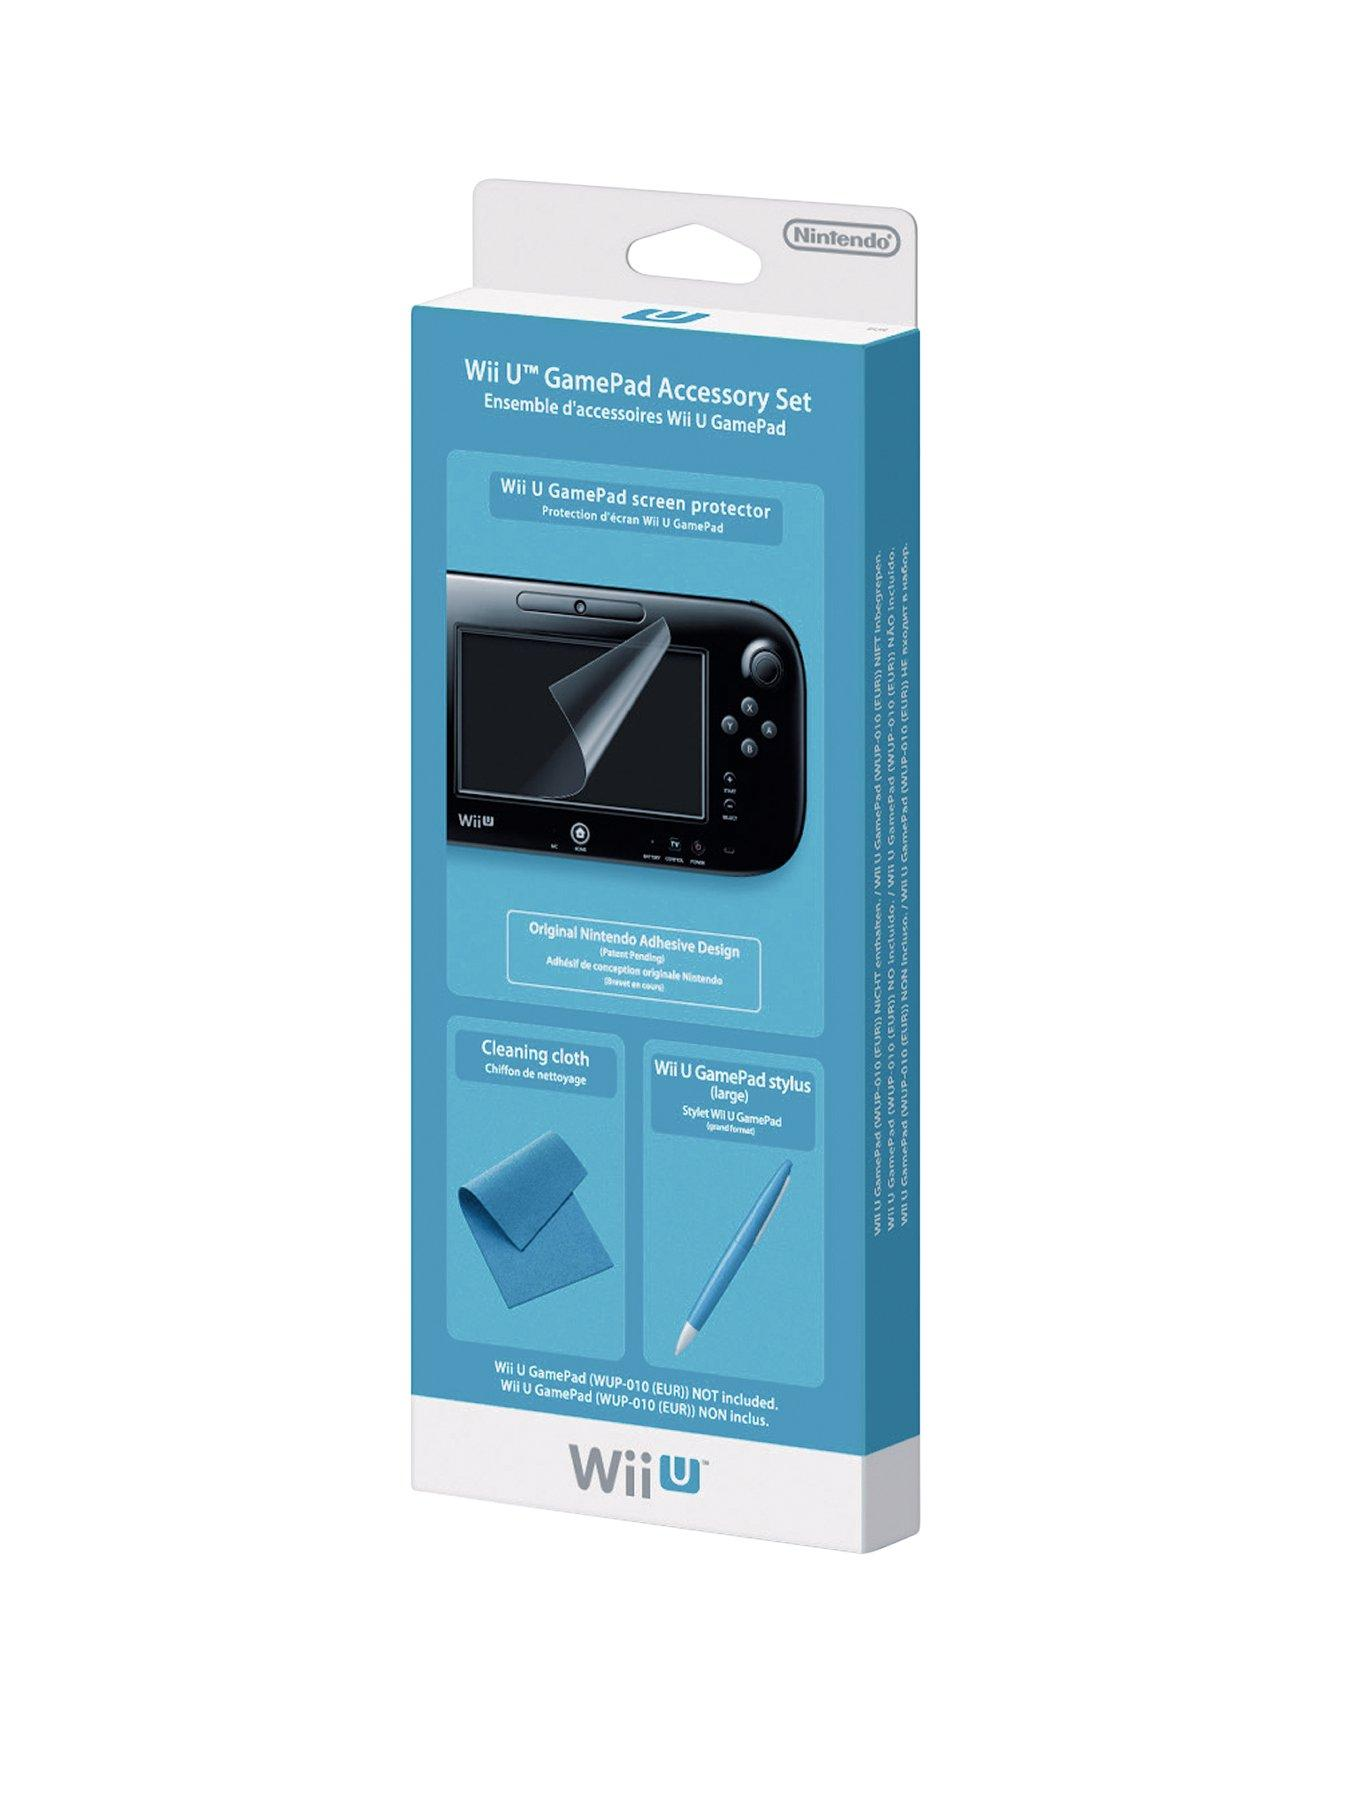 GamePad Accessory Set